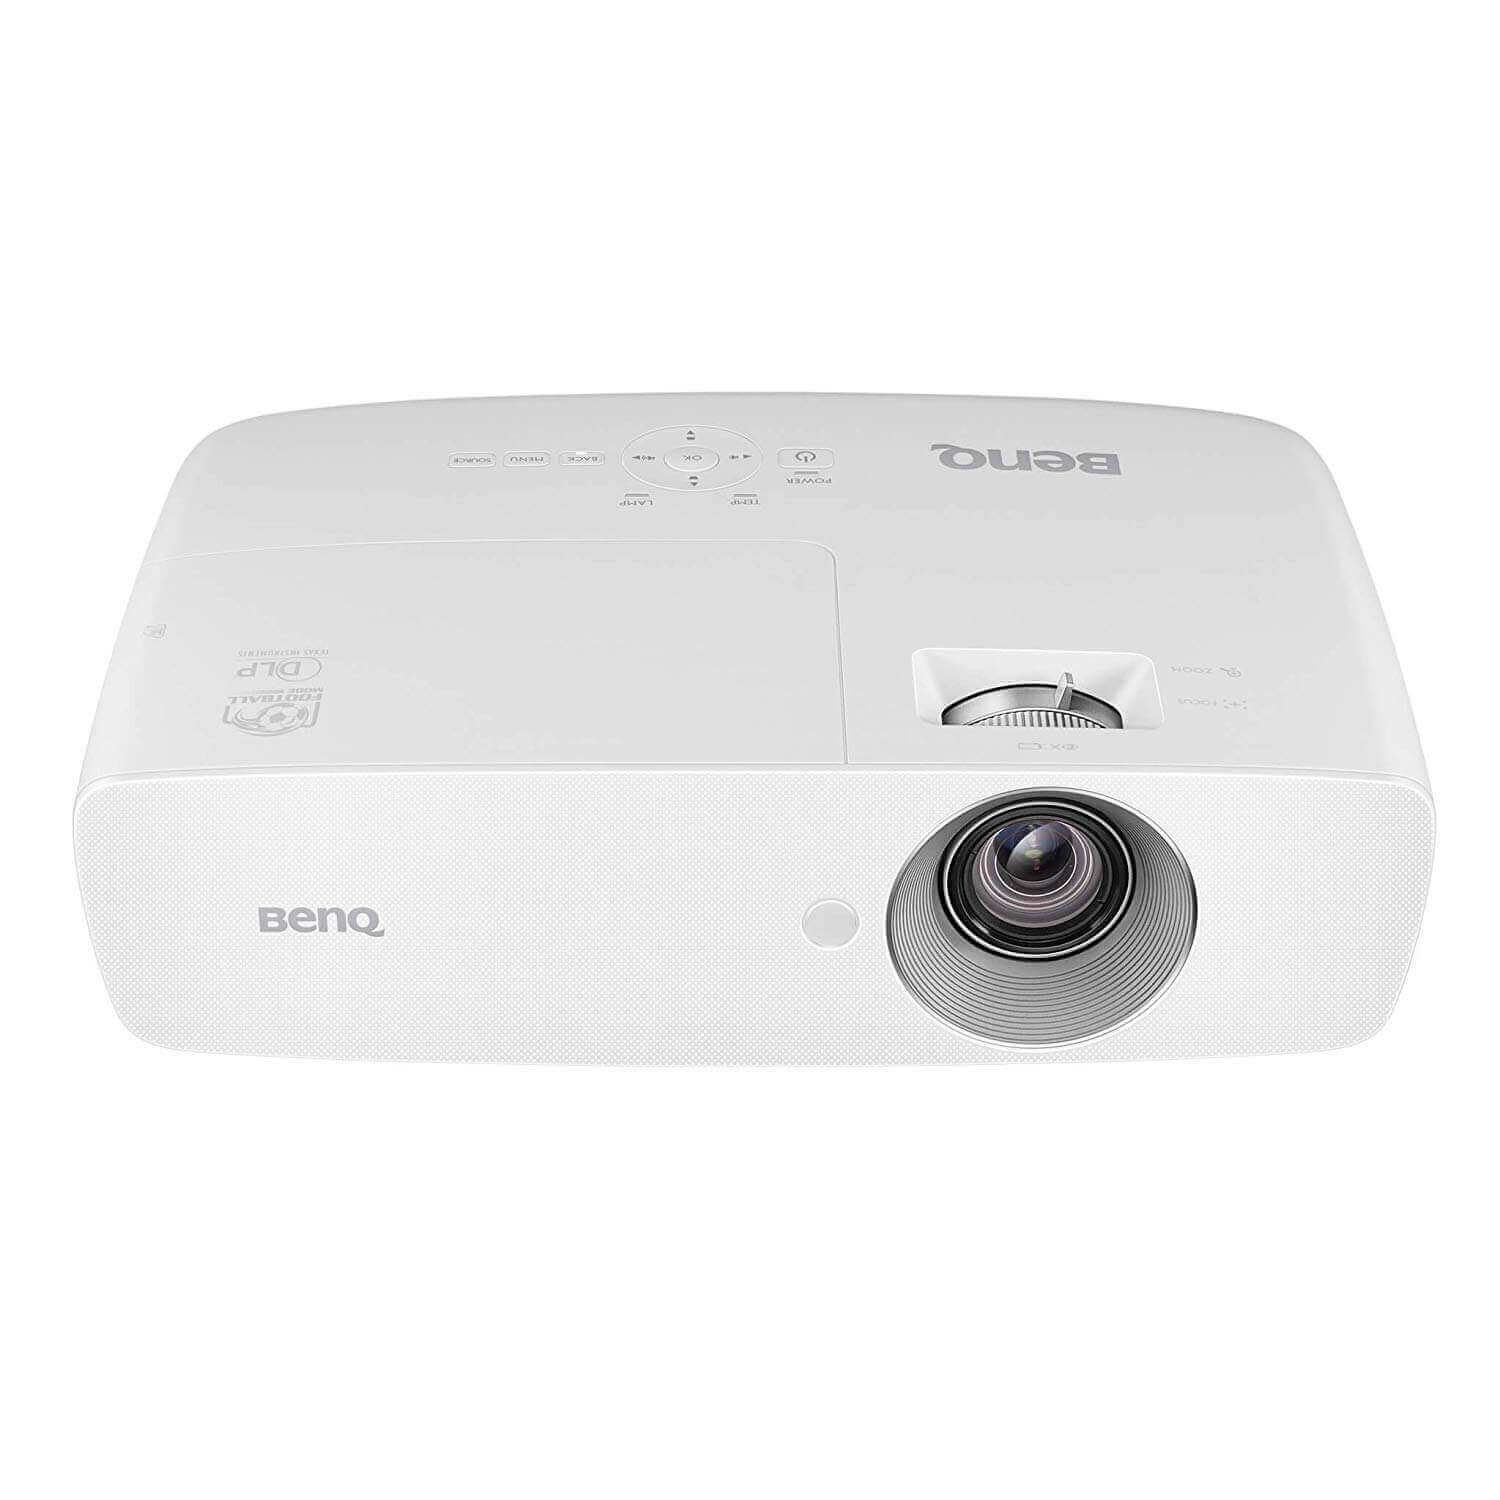 Benq Th683 Proyector Th683 Cine En Casa, 3200 Lúmenes, Full Hd